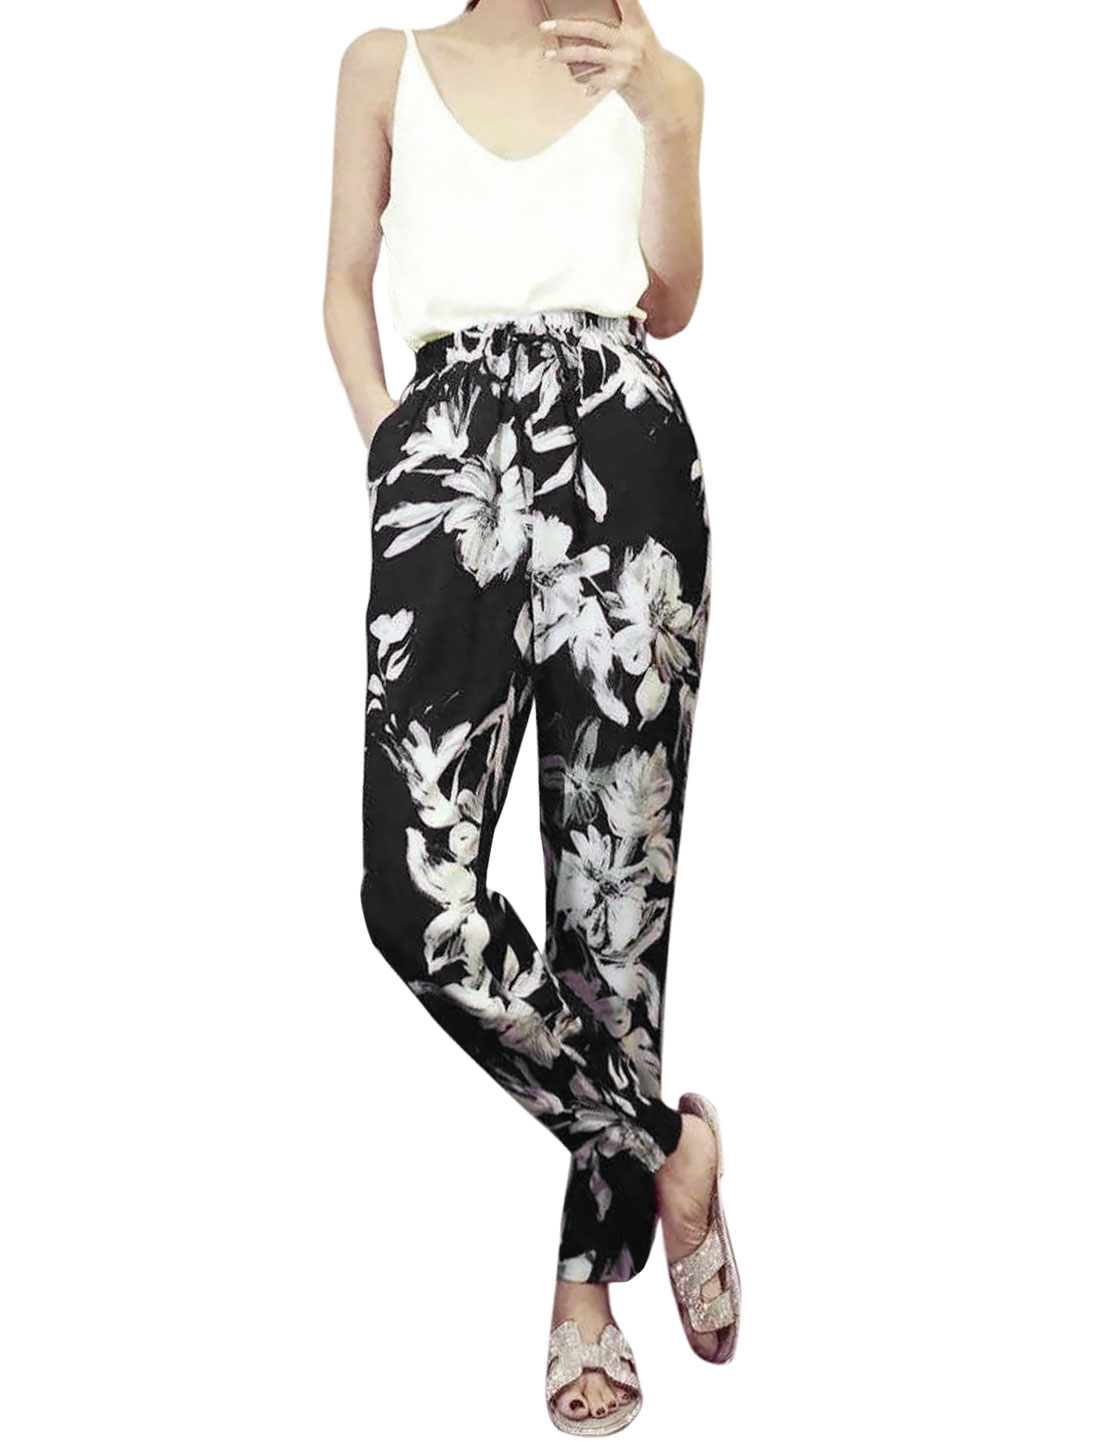 Ladies Casual Top w Floral Print Front Pockets Pants White Black XS